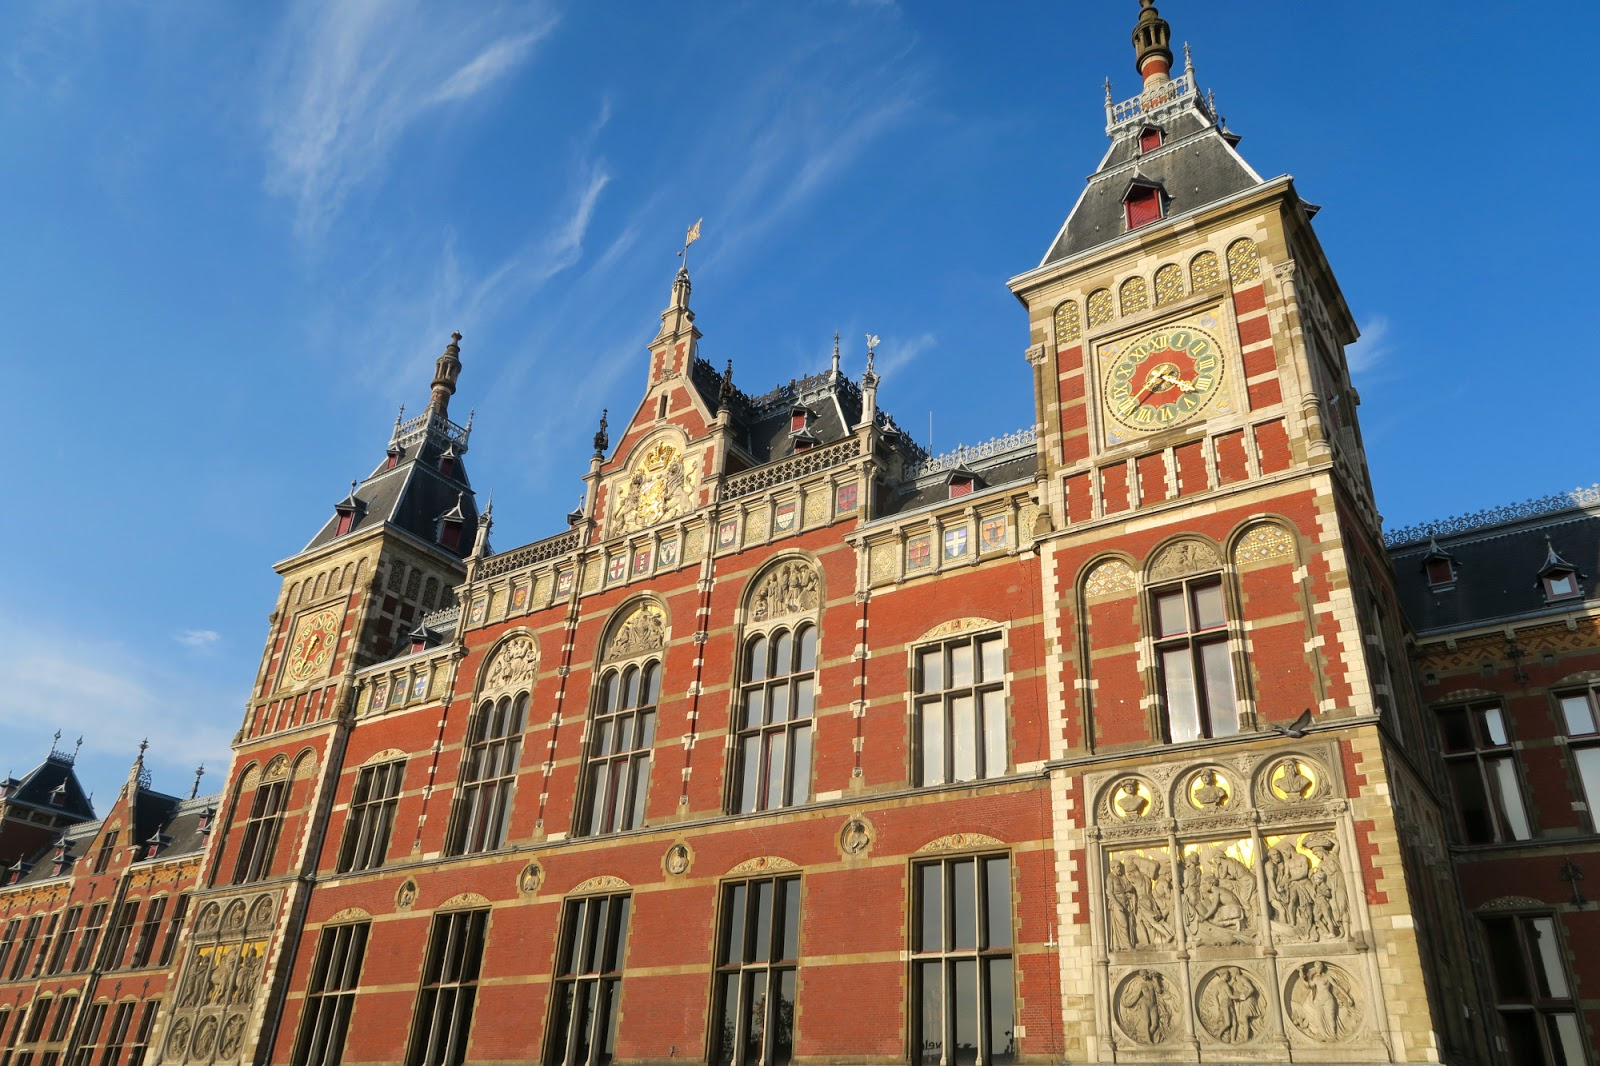 Amsterdam central station exterior